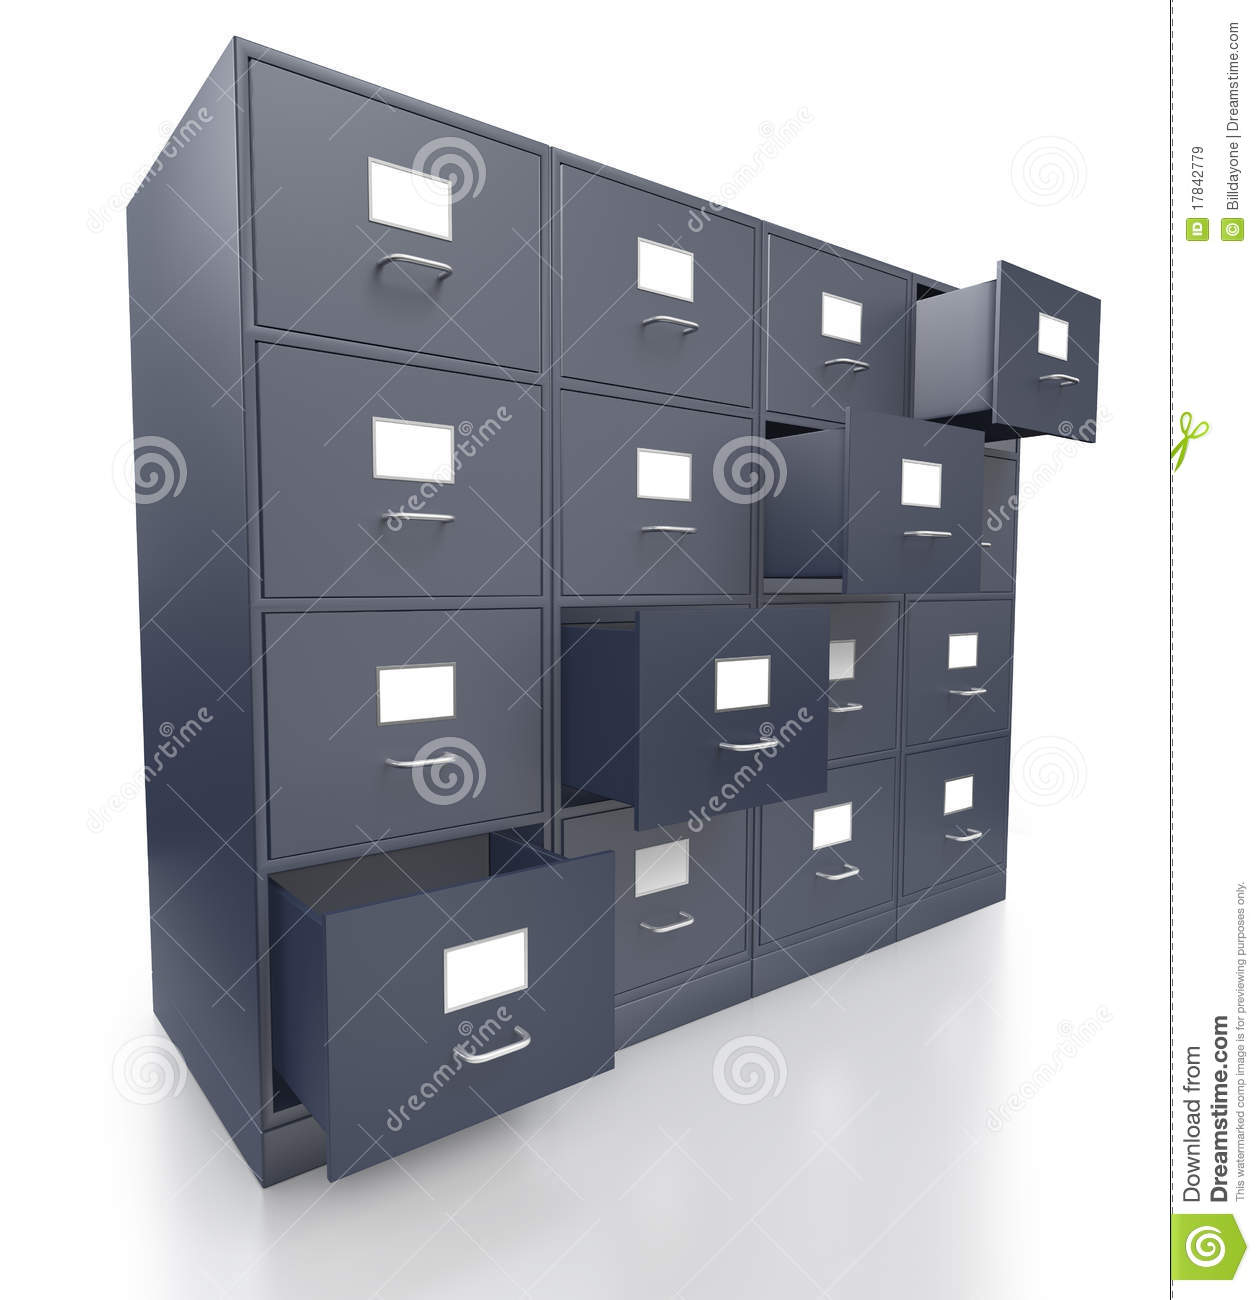 Four Grey Office Filing Cabinets With Open Drawers Stock